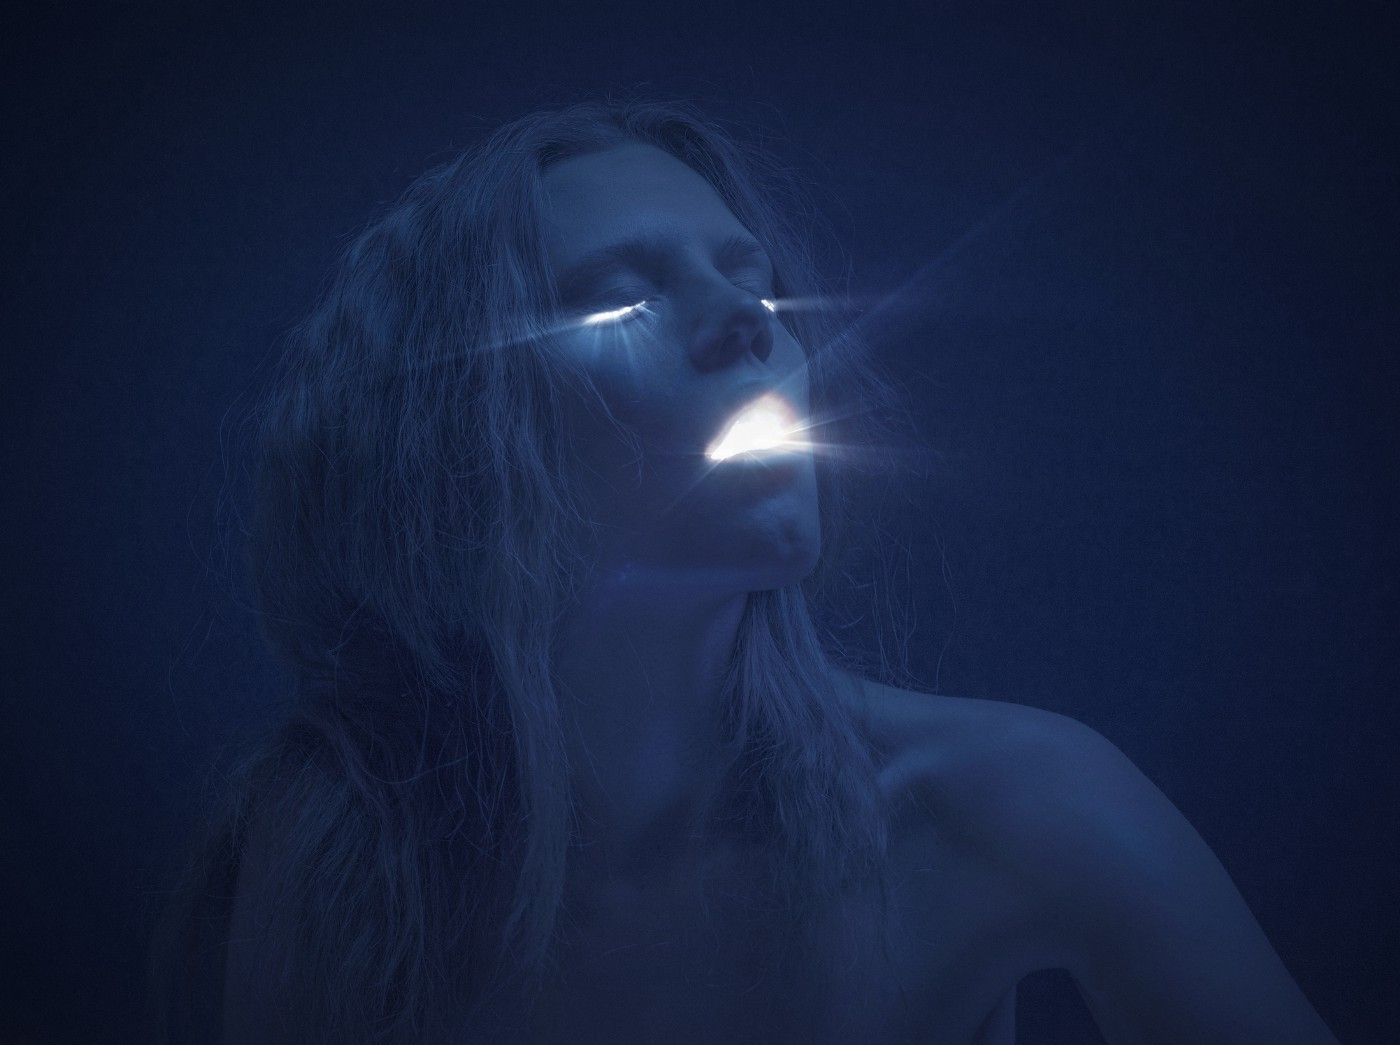 A photo of a woman with light shining from her eyes and mouth. The image is a dark blue/black shade.